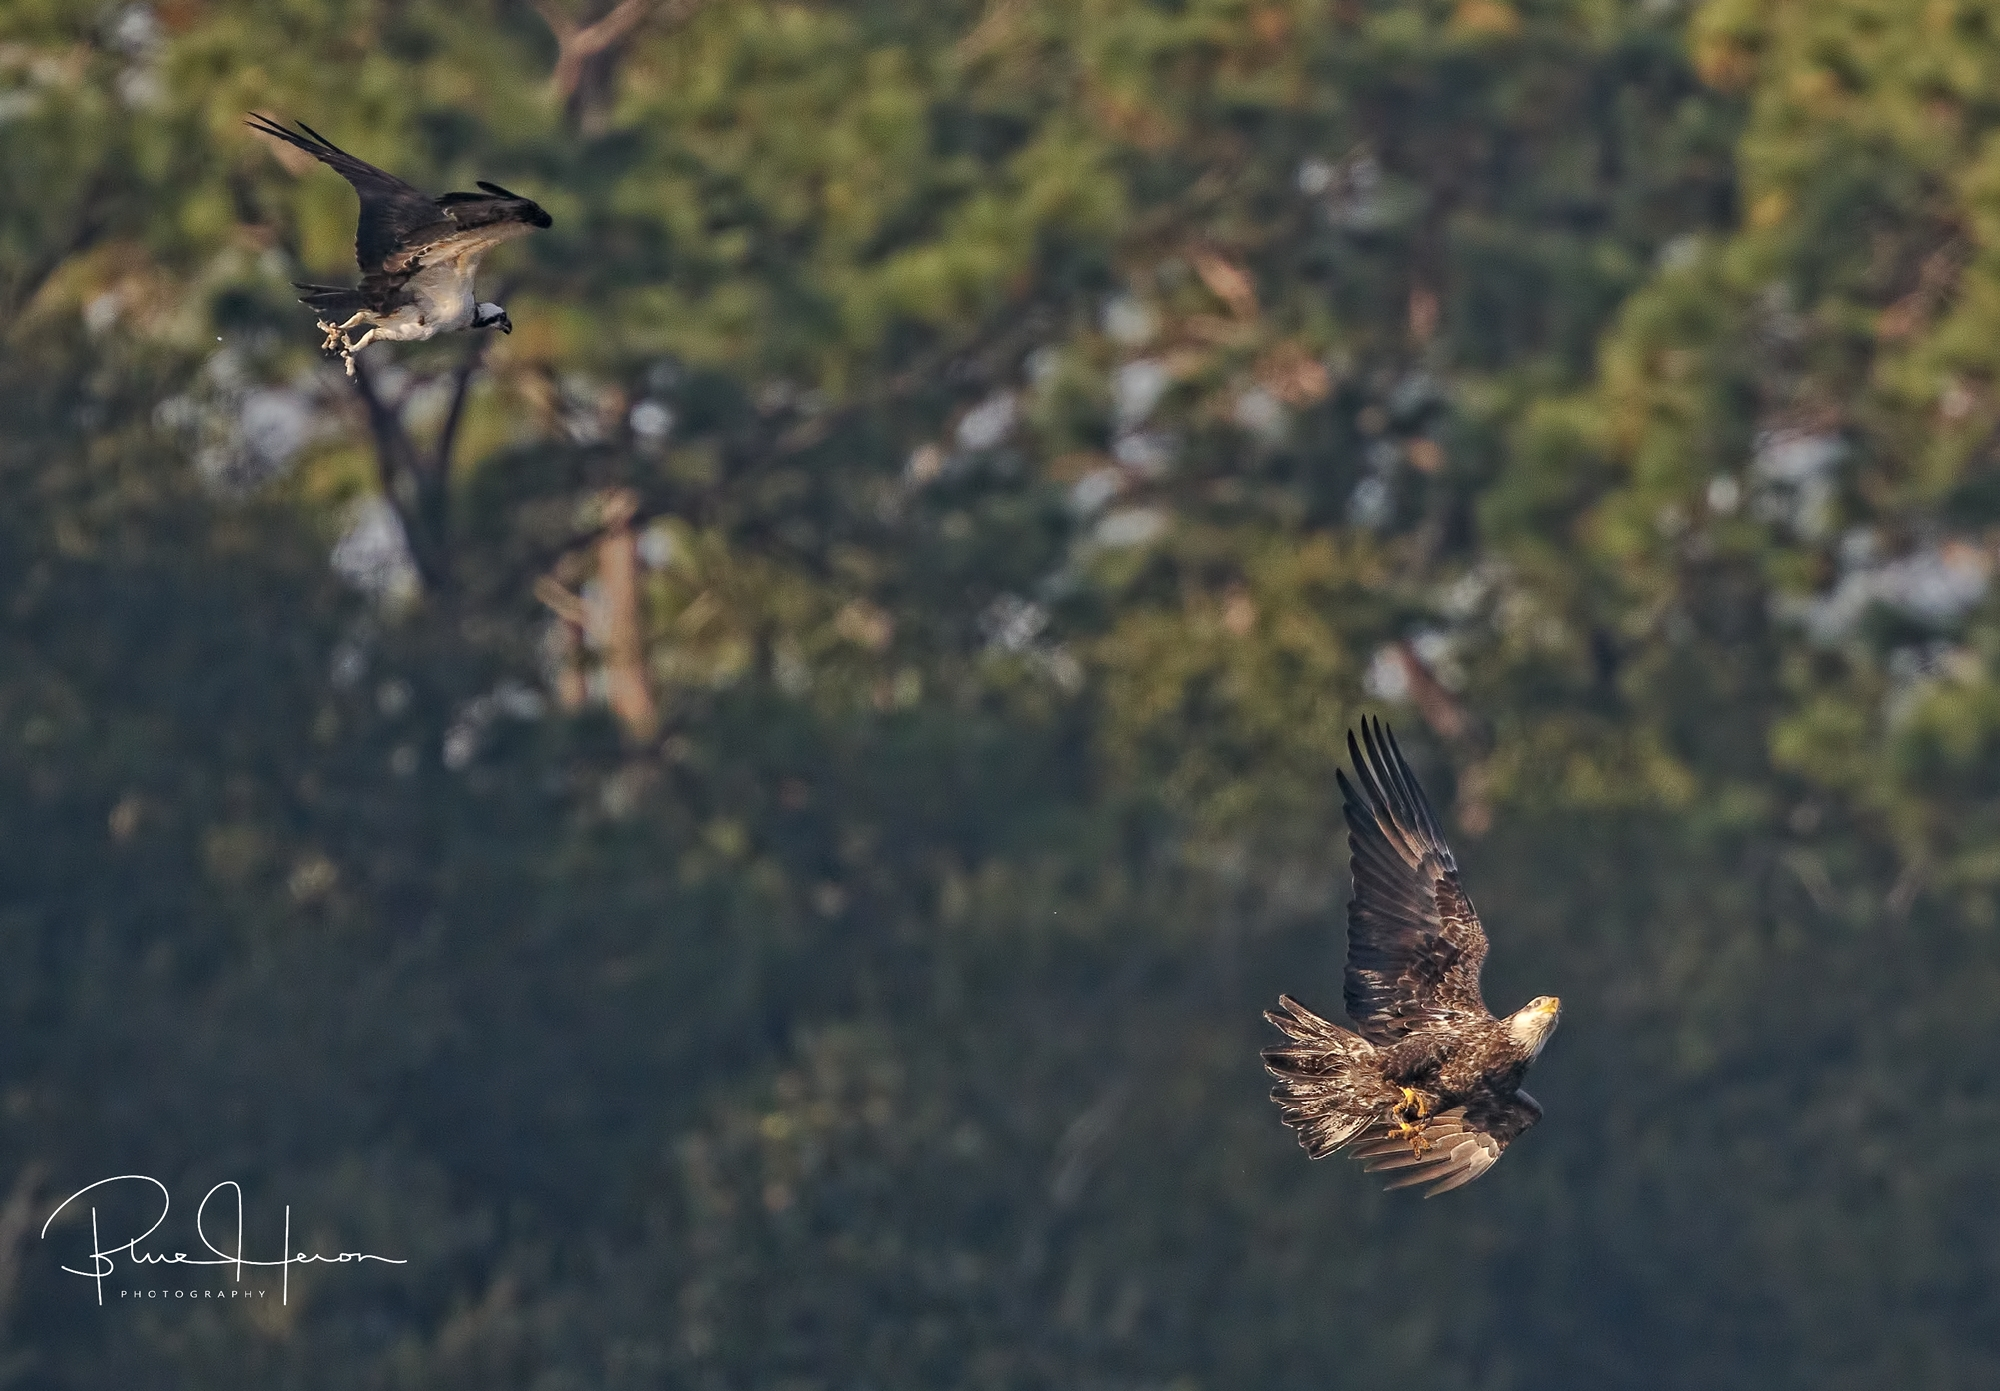 Talons and tempers flare over the Broward, the Osprey goes after the Eagle